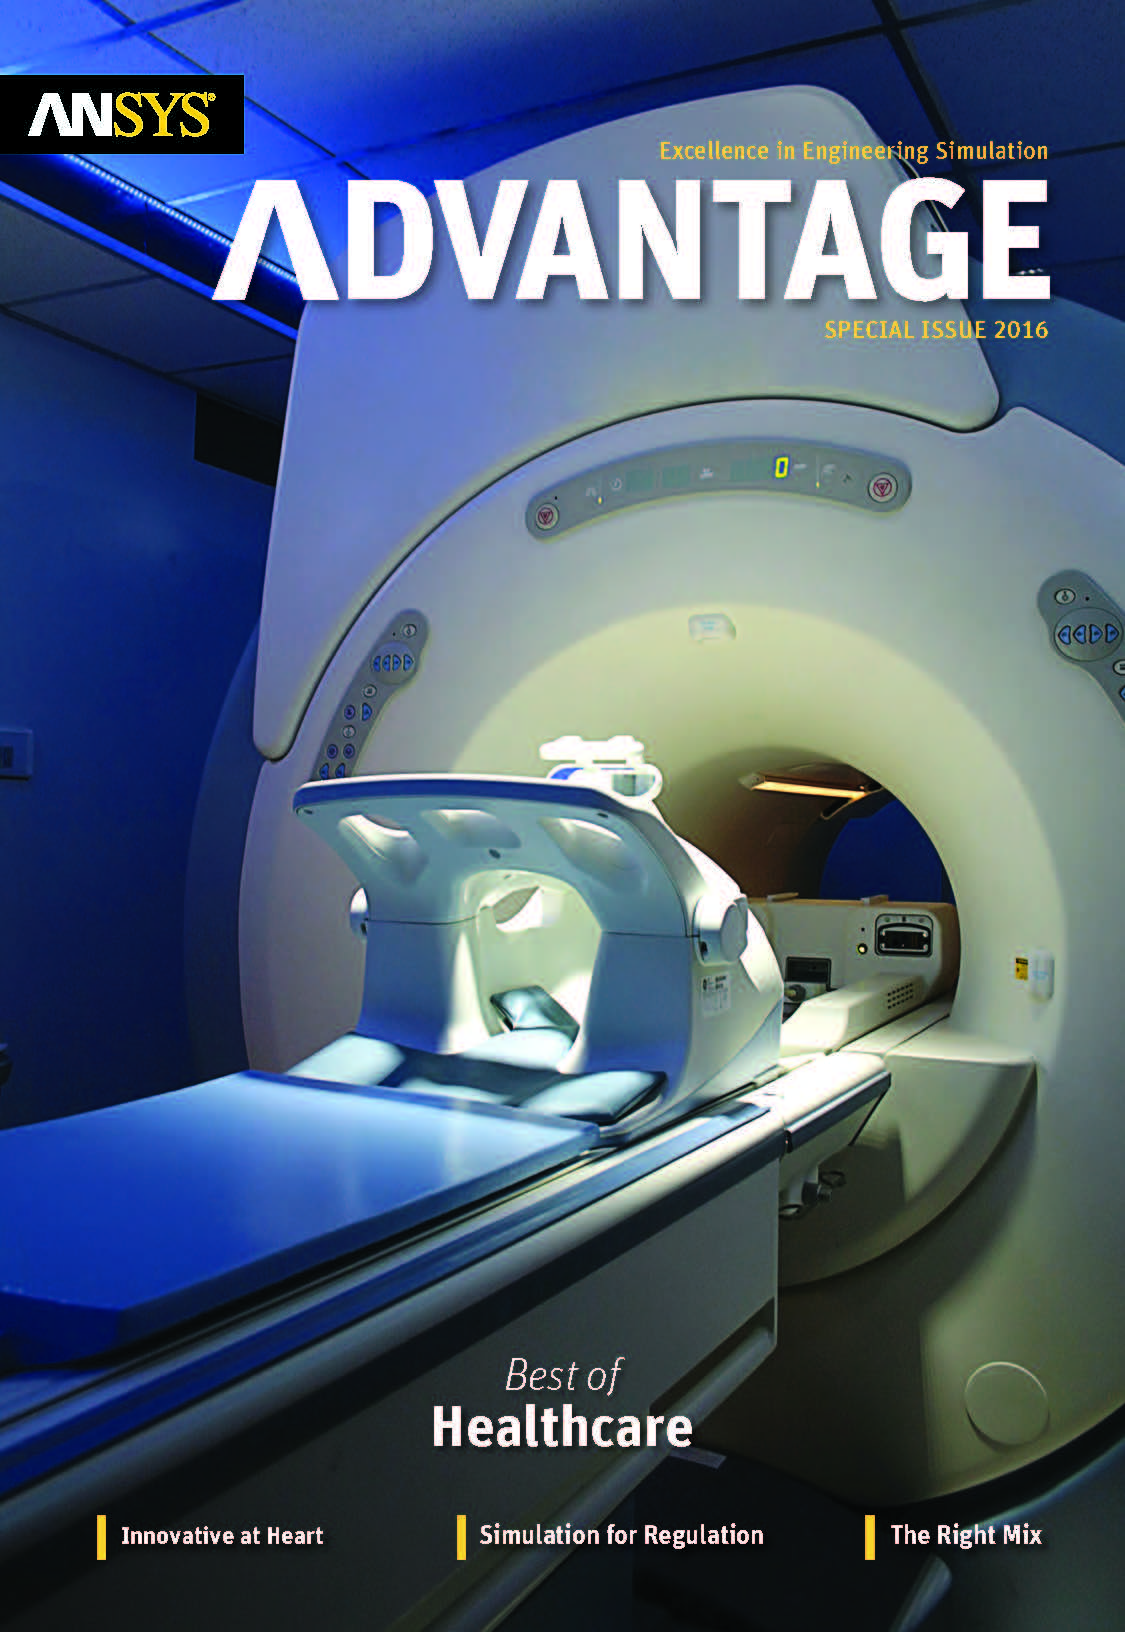 Caso de Grupo SSC - ANSYS Advantage Best of Healthcare. Special ISSUE 2016.